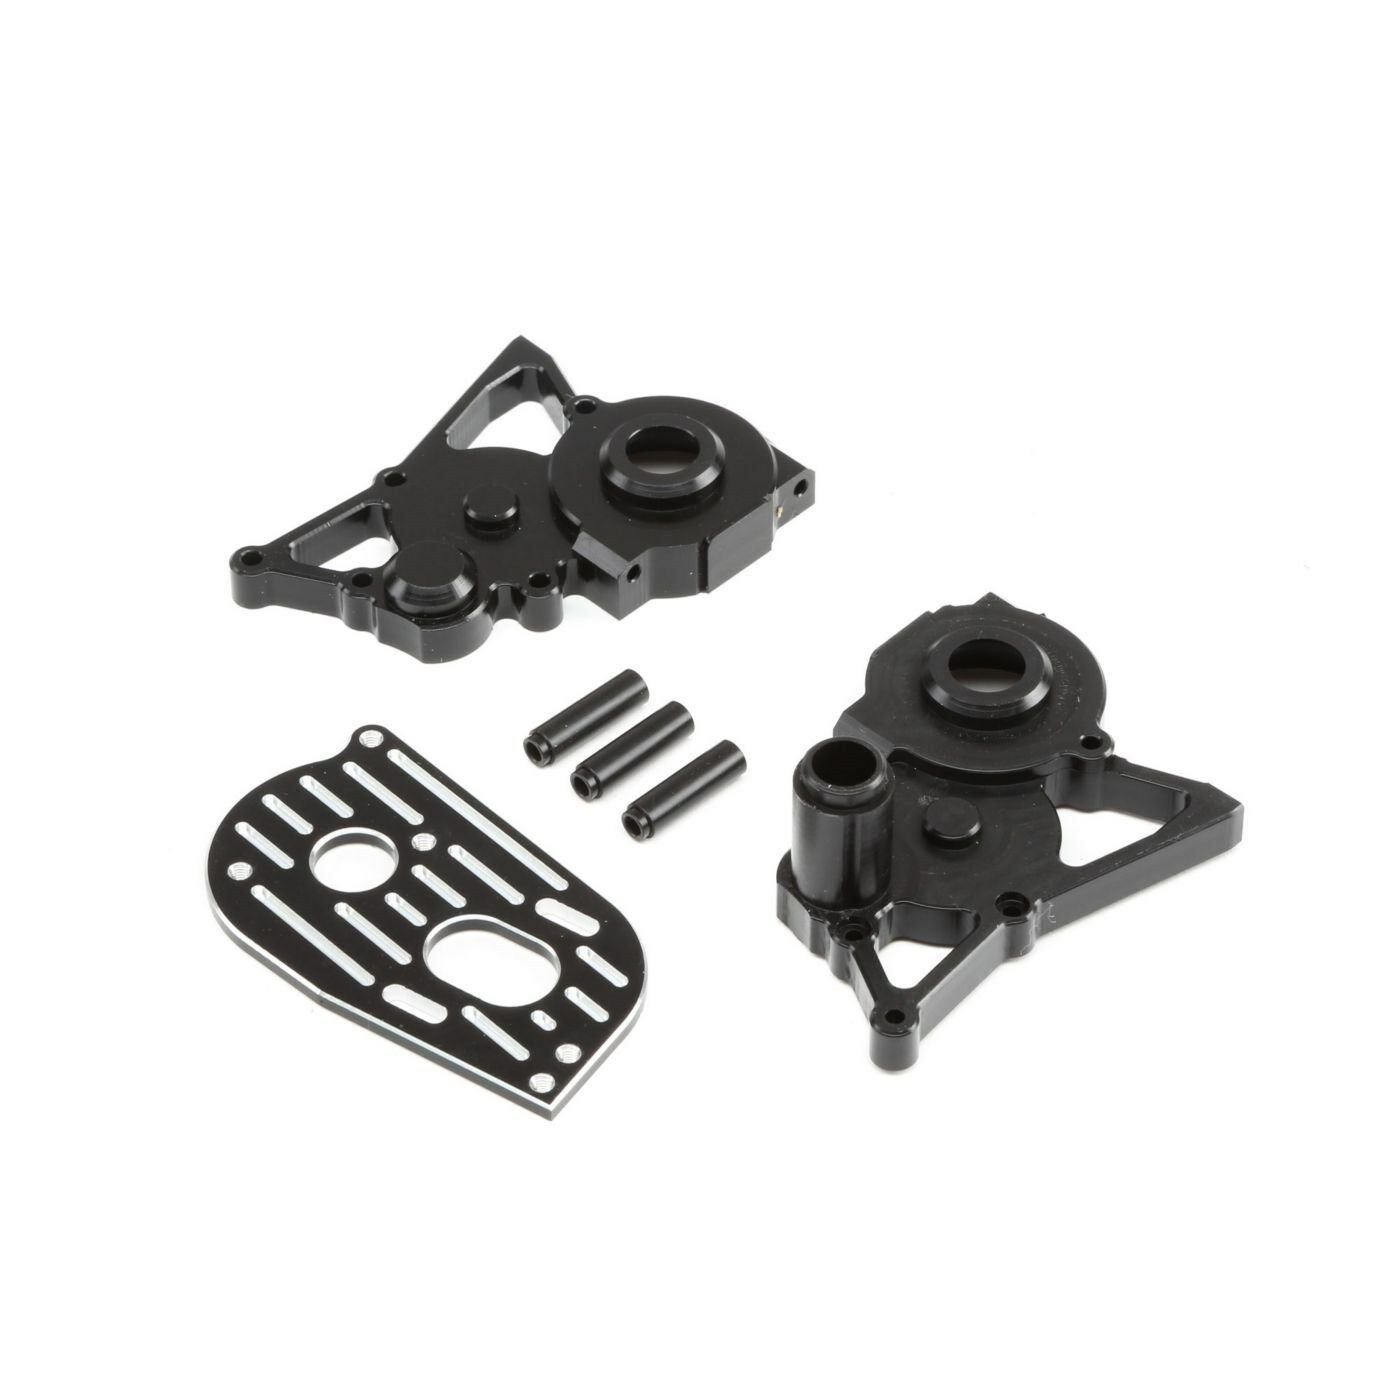 Team Losi Racing Gear Case Set  3-Gear Dirt Laydown 22 3.0 - TLR332063